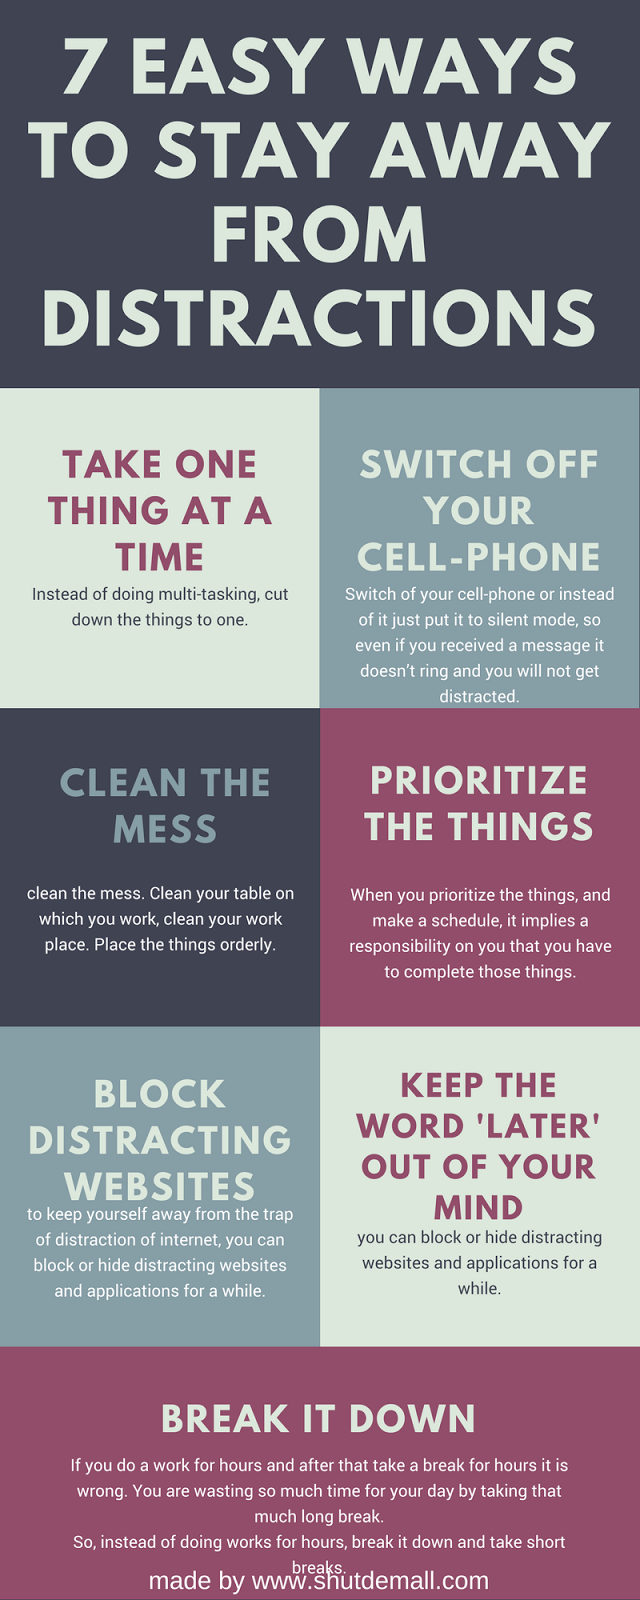 7 easy ways to stay away from distractions